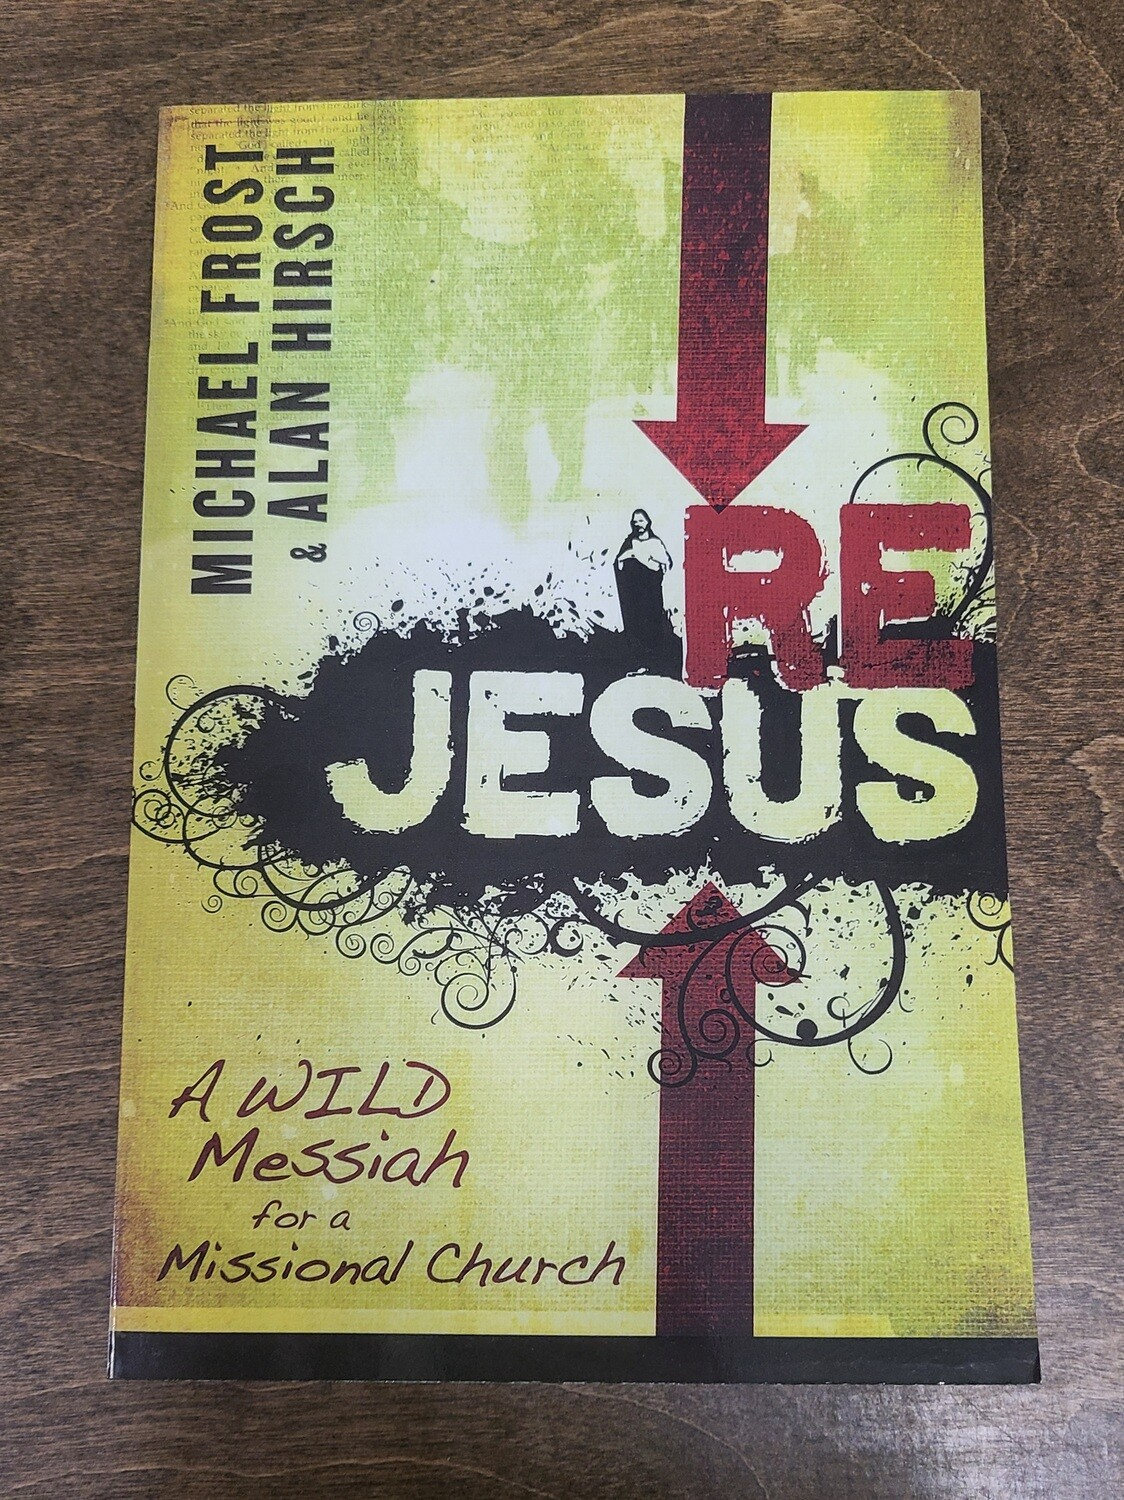 ReJesus: A Wild Messiah for a Missional Church by Michael Frost and Alan Hirsch